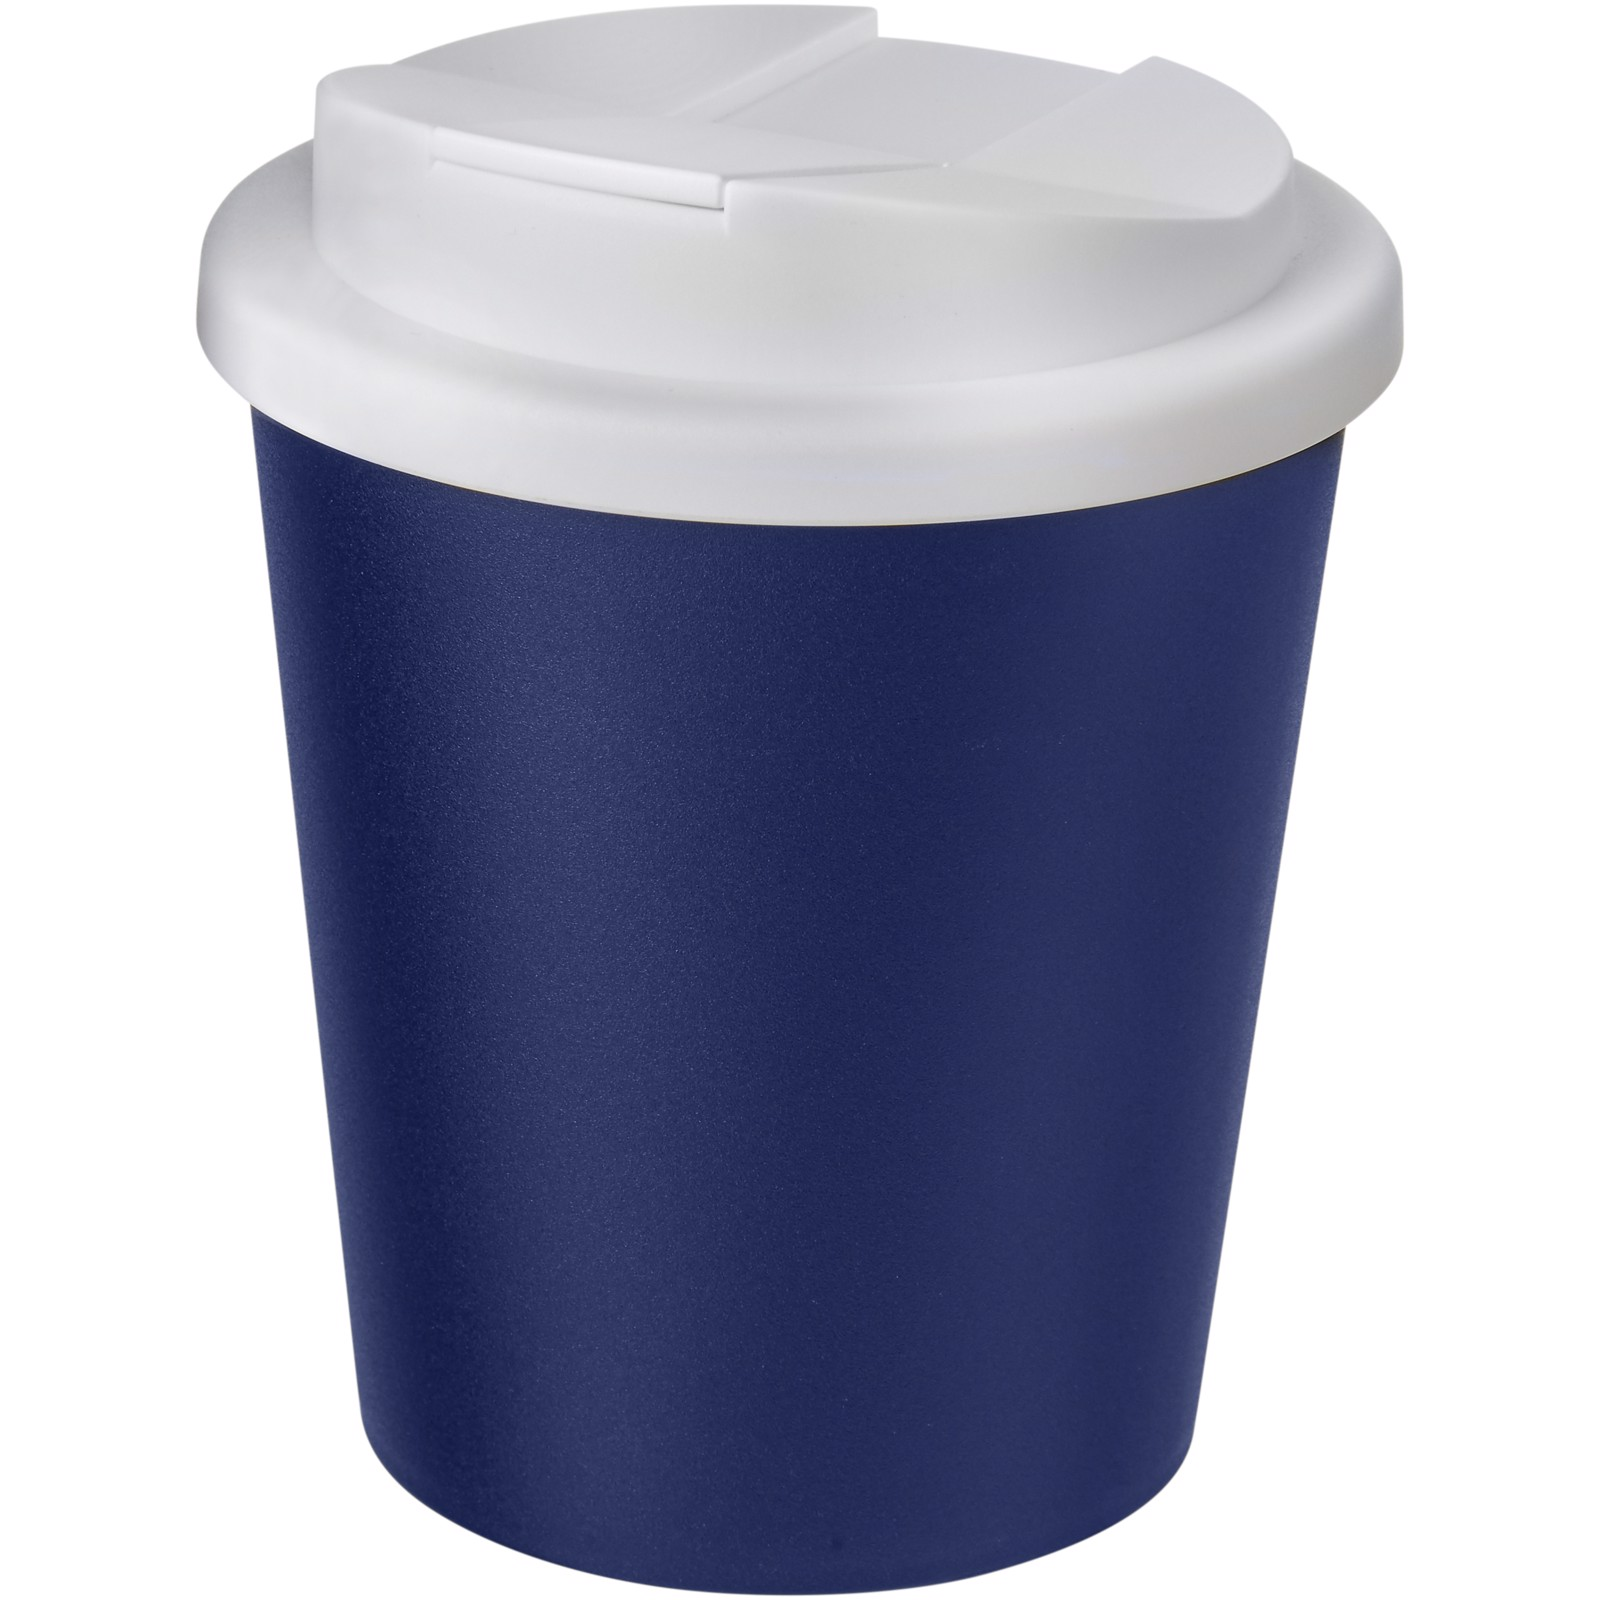 Americano Espresso® 250 ml tumbler with spill-proof lid - Blue / White